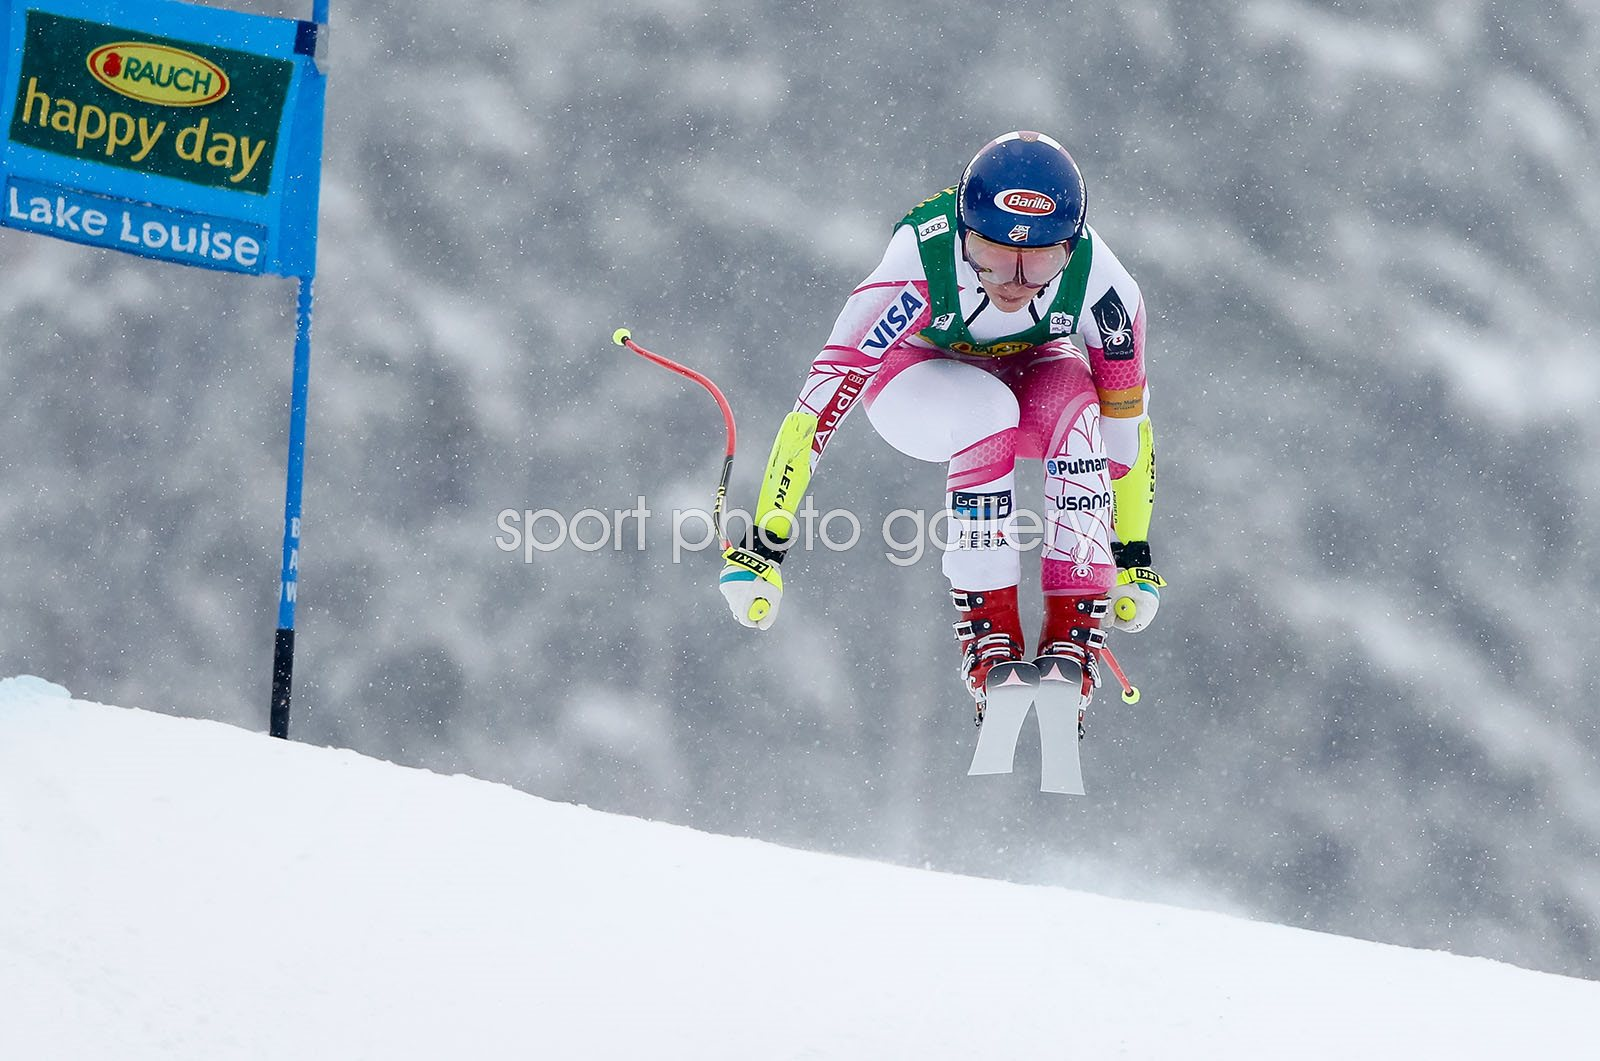 Mikaela Shiffrin USA Alpine Ski World Cup Super G Slalom Lake Loiuse 2016